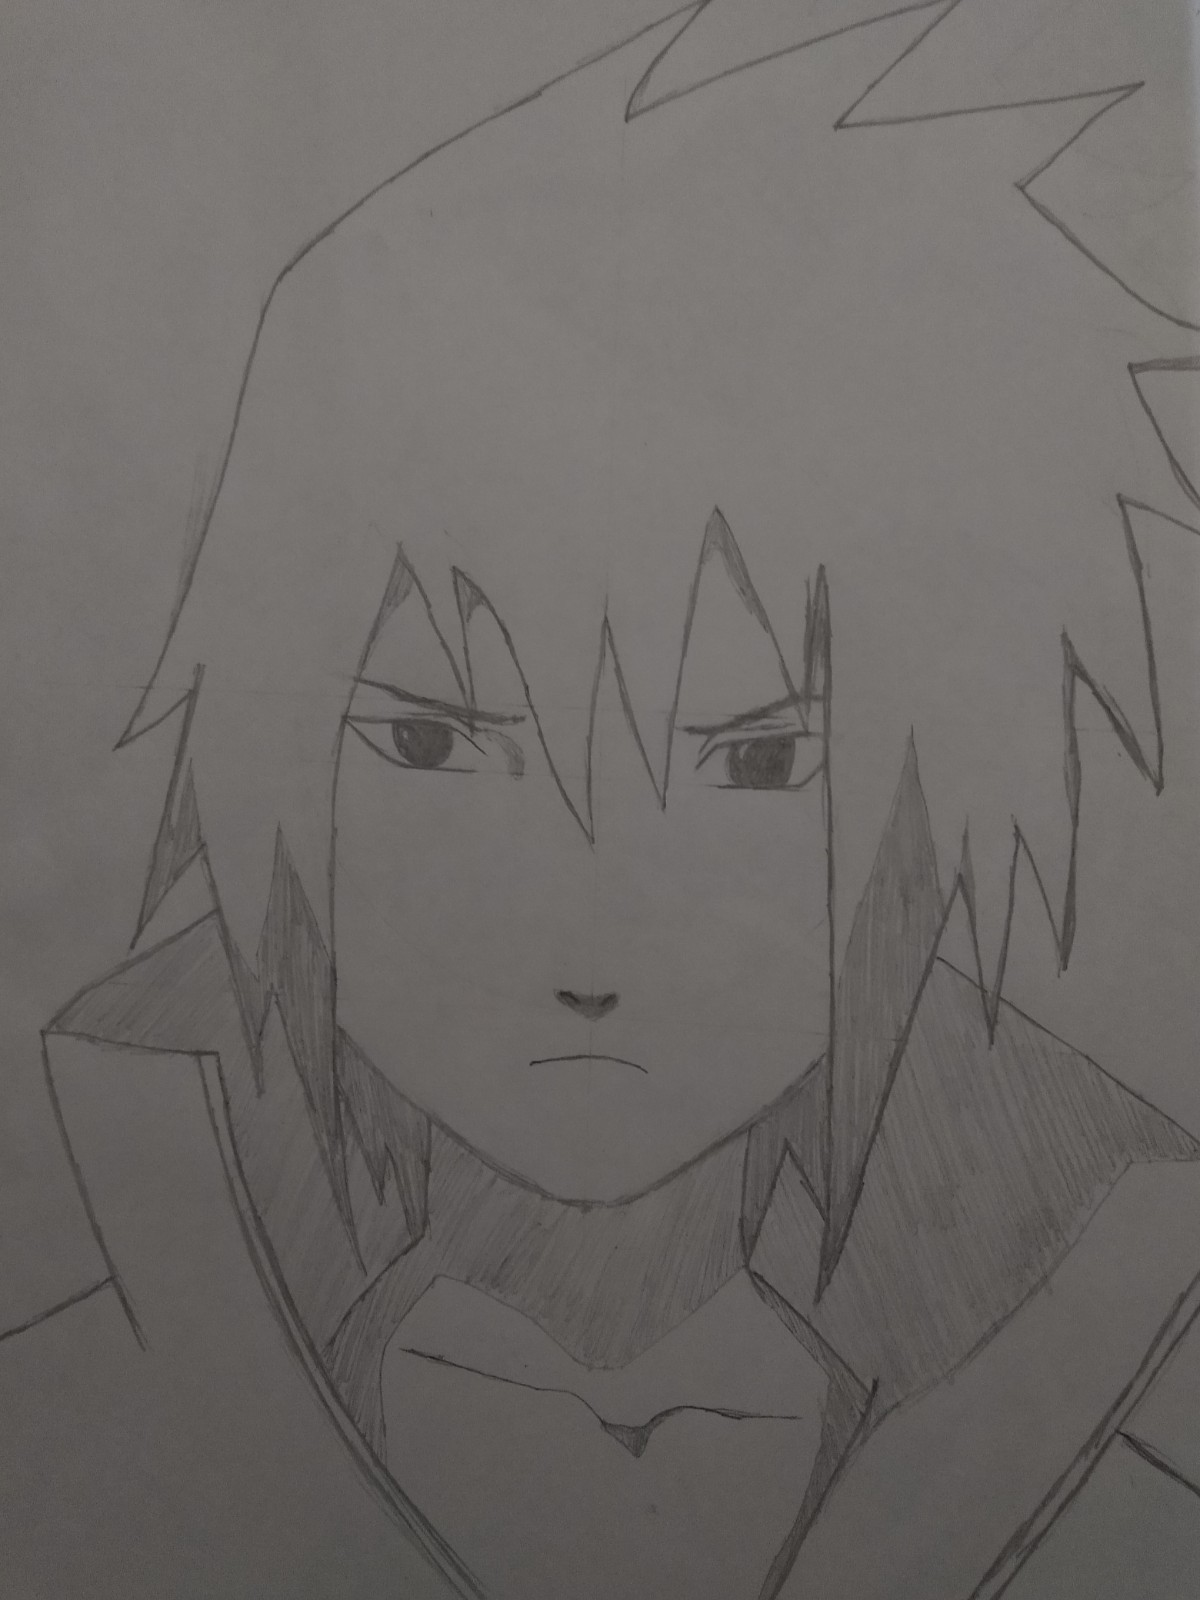 Passo 14 De Como Desenhar o Sasuke - How to Draw Sasuke - Video Teaches Sasuke in Less than 5 Minutes!